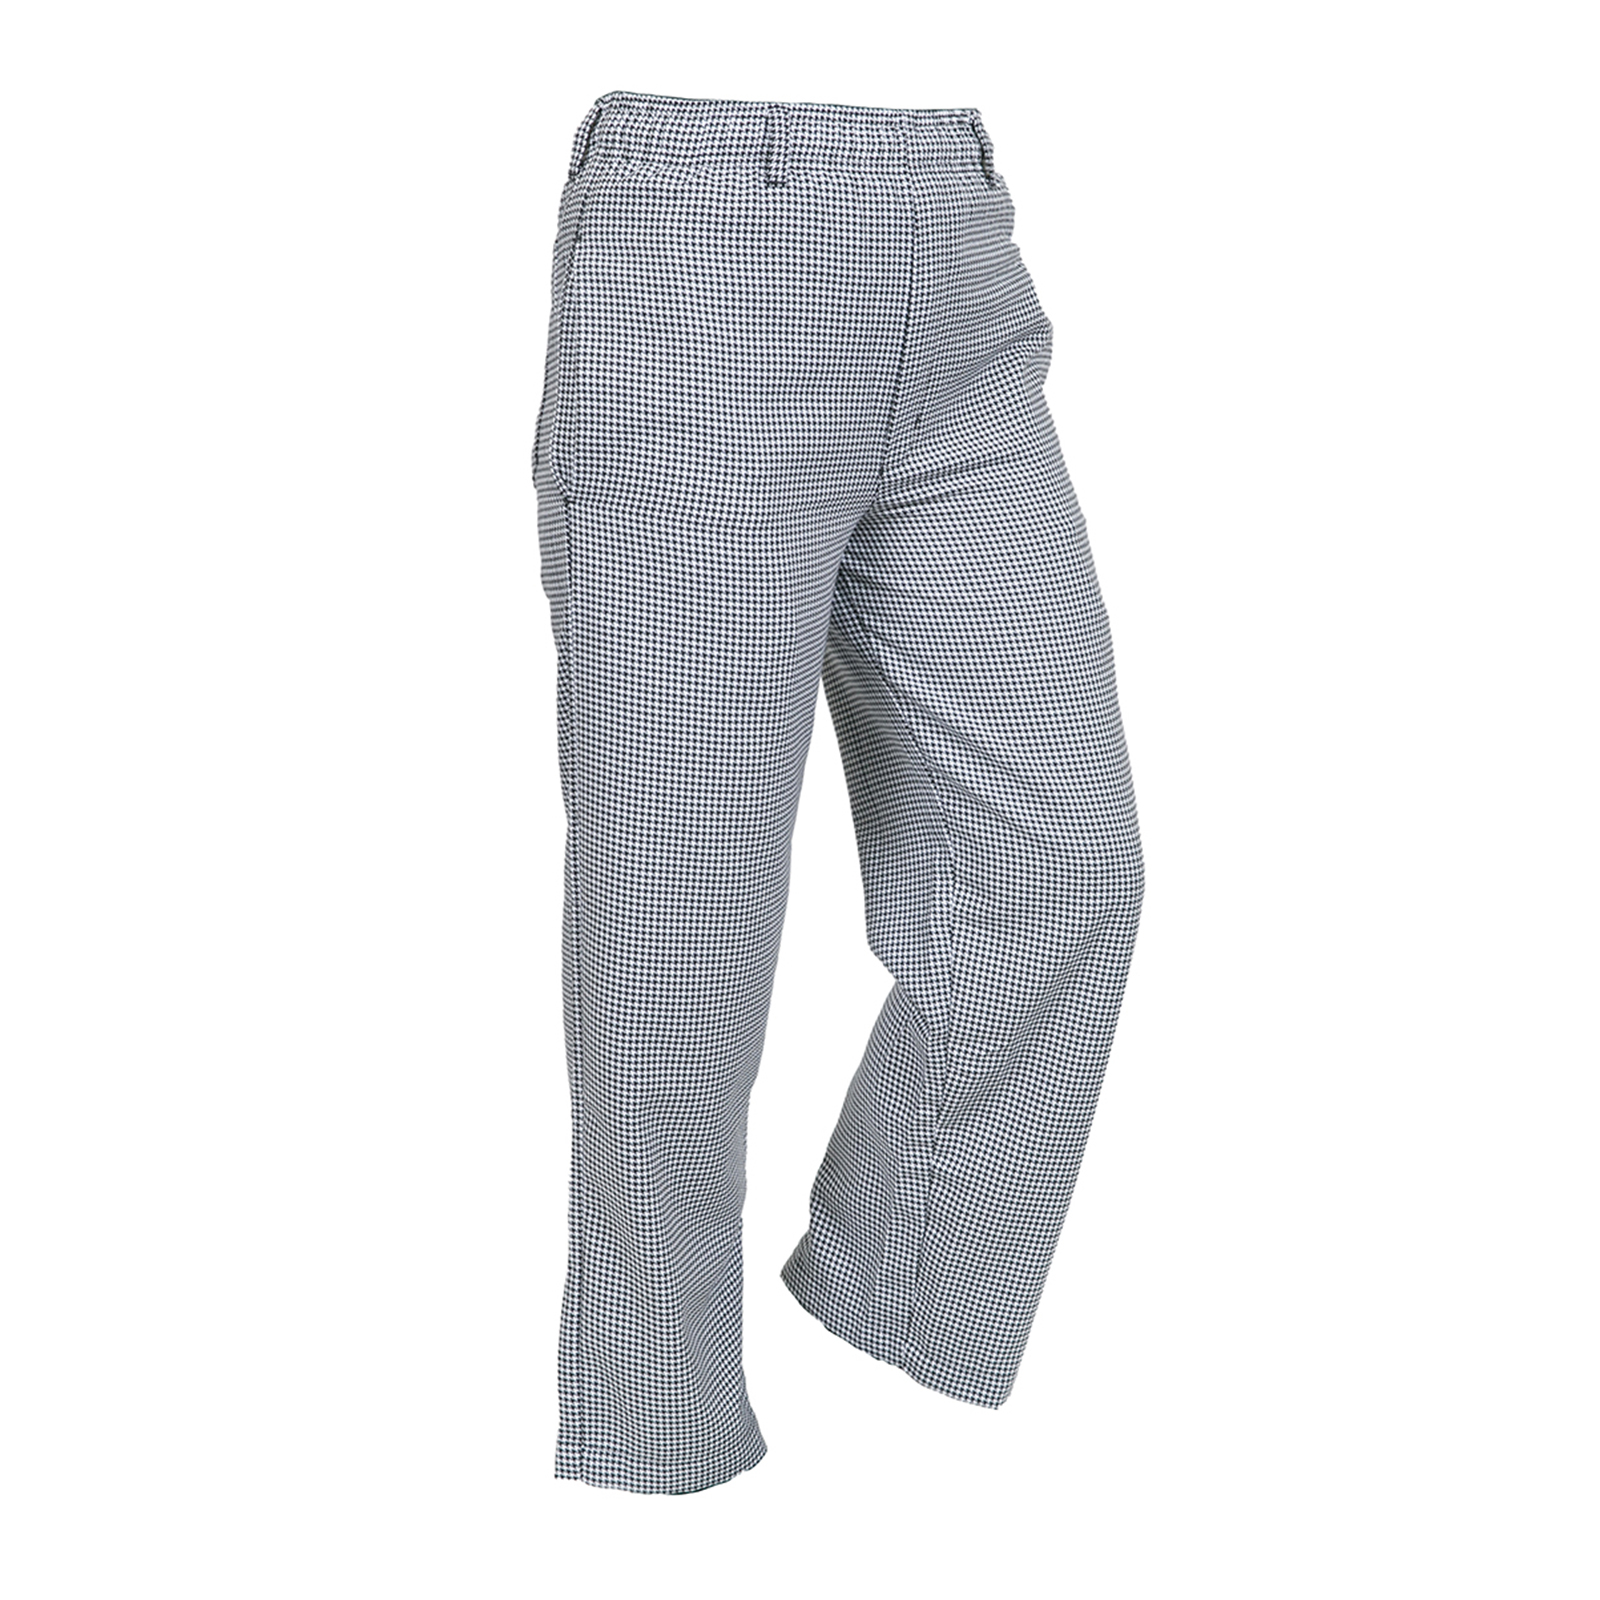 Mercer Culinary M61050HTL chef's pants